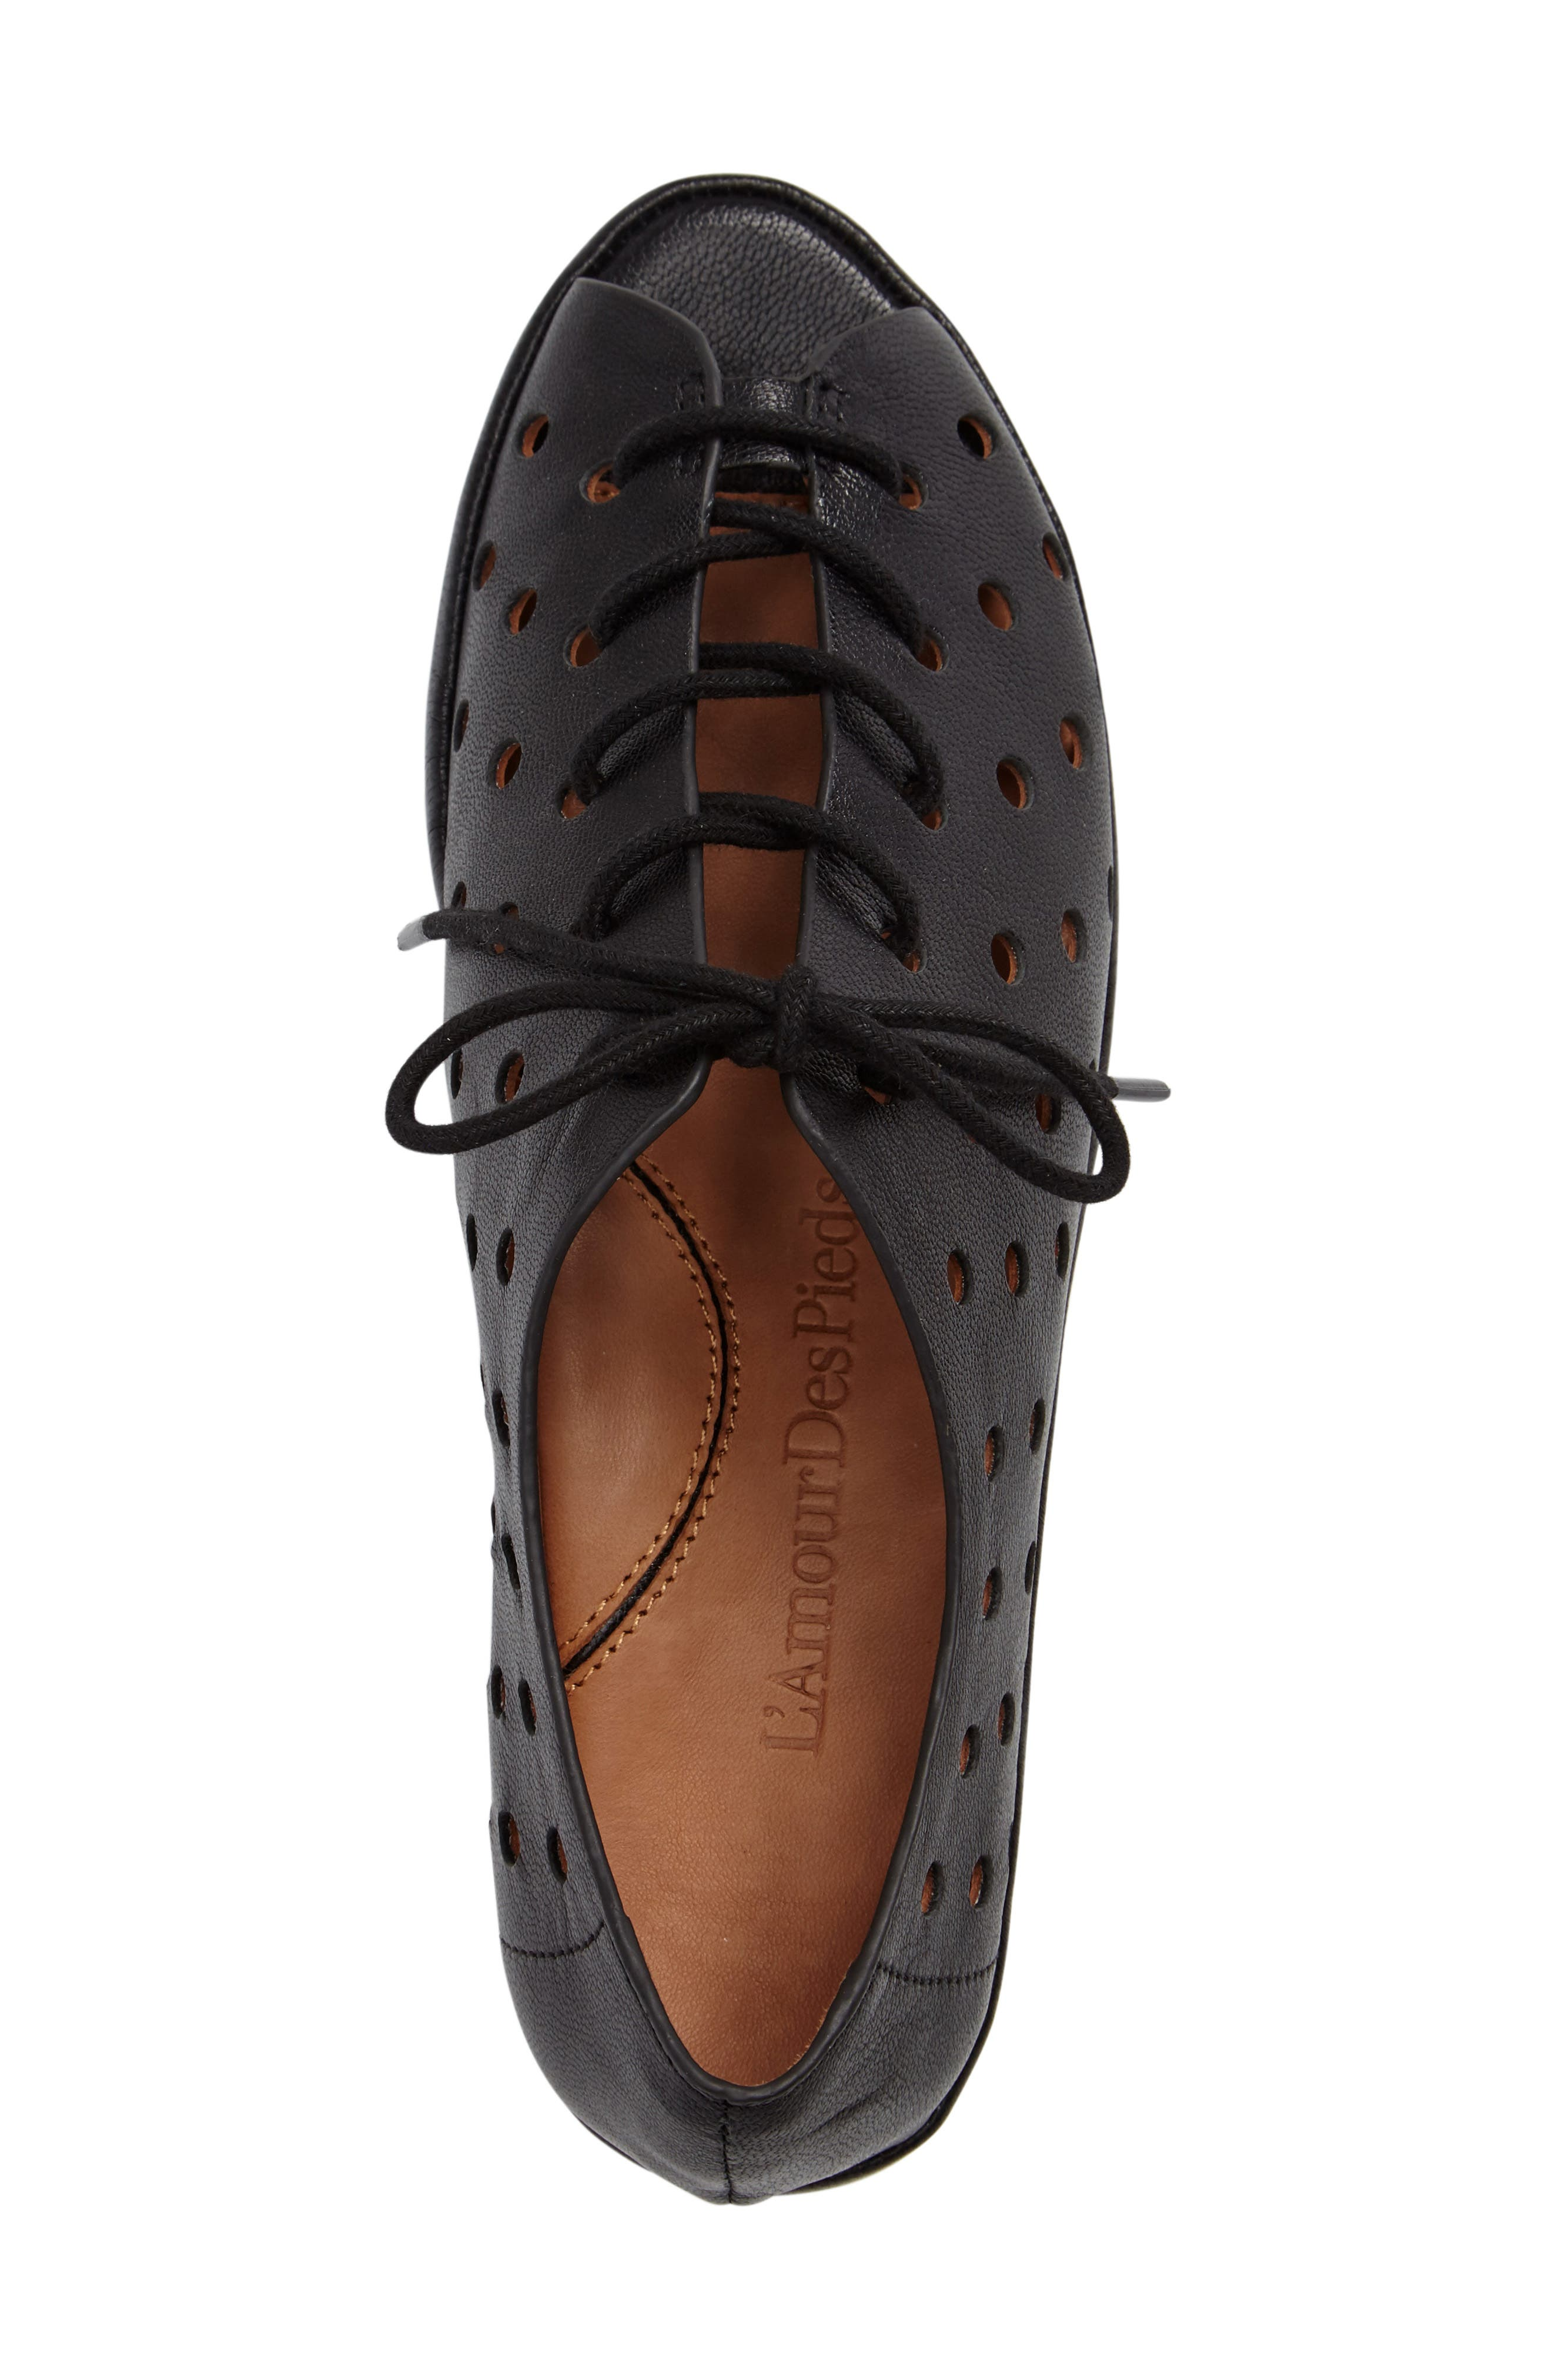 Boccoo Perforated Lace-Up Oxford,                             Alternate thumbnail 3, color,                             001